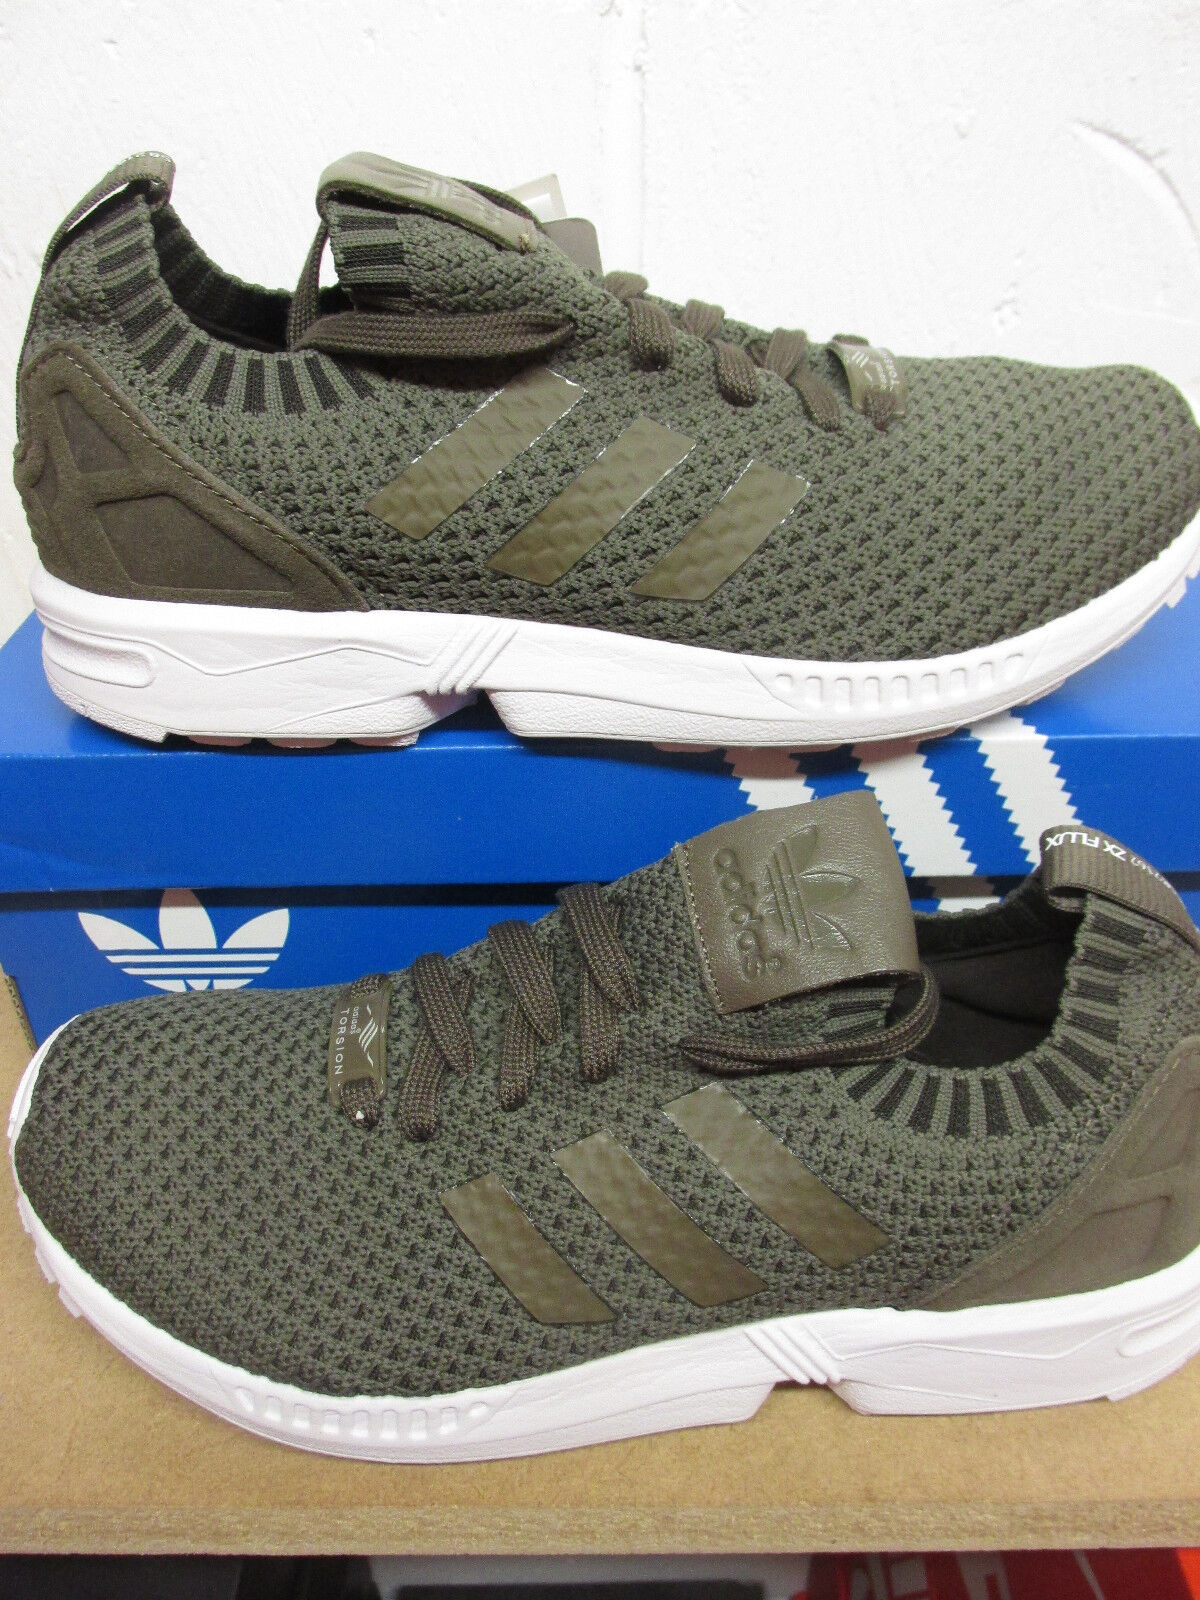 Adidas Originals ZX Flux PK Sneakers Hombre Running Trainers S82162 Sneakers PK 8209f6